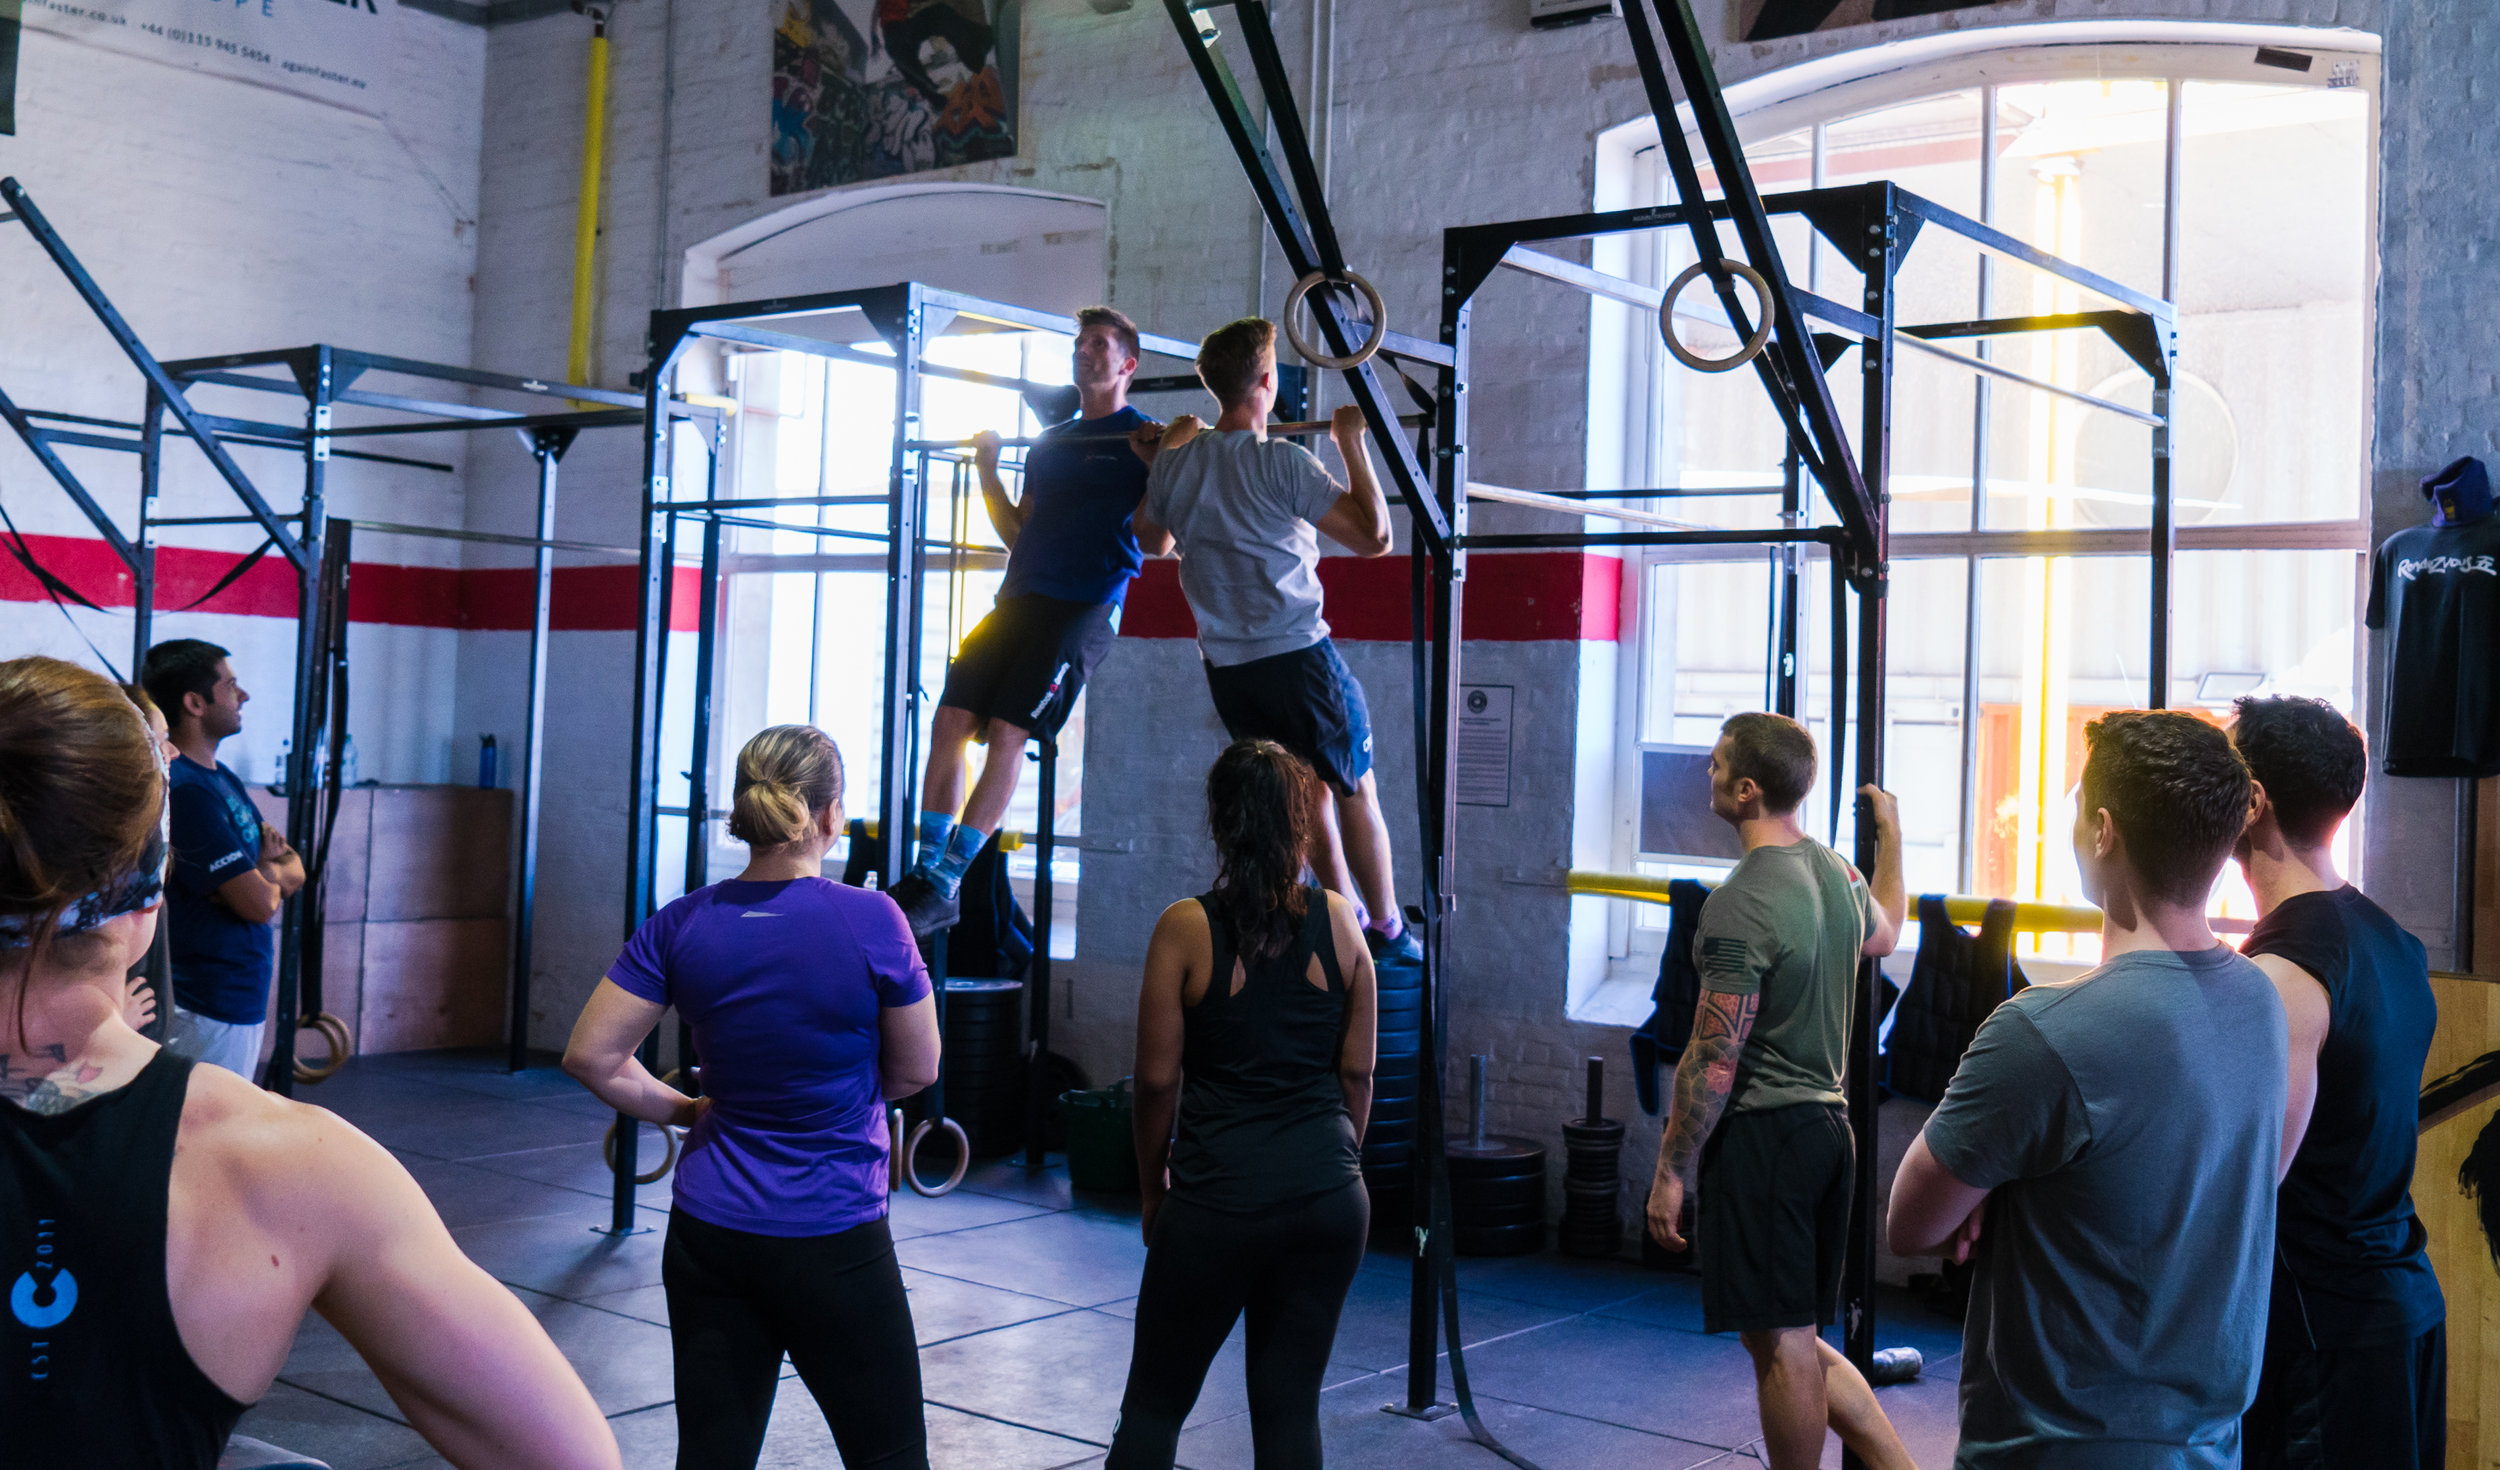 Teams for the CrossFit 1864 Open Competition will be announced Saturday afternoon! Have you registered for the Open yet??